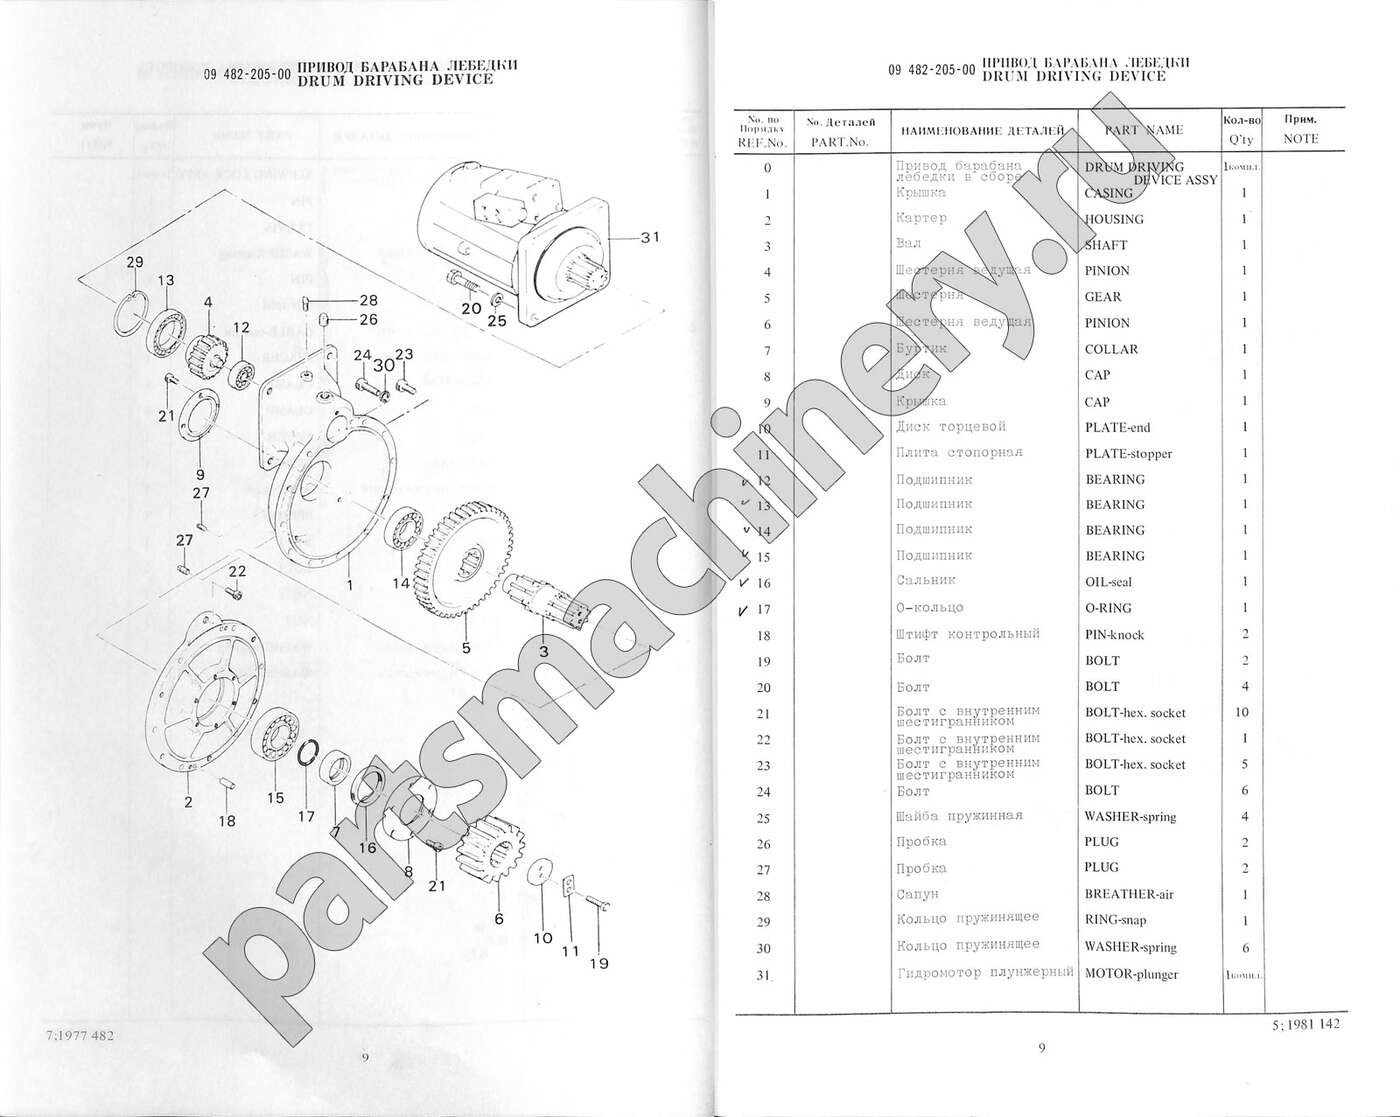 Parts For Isuzu Nk 750ys